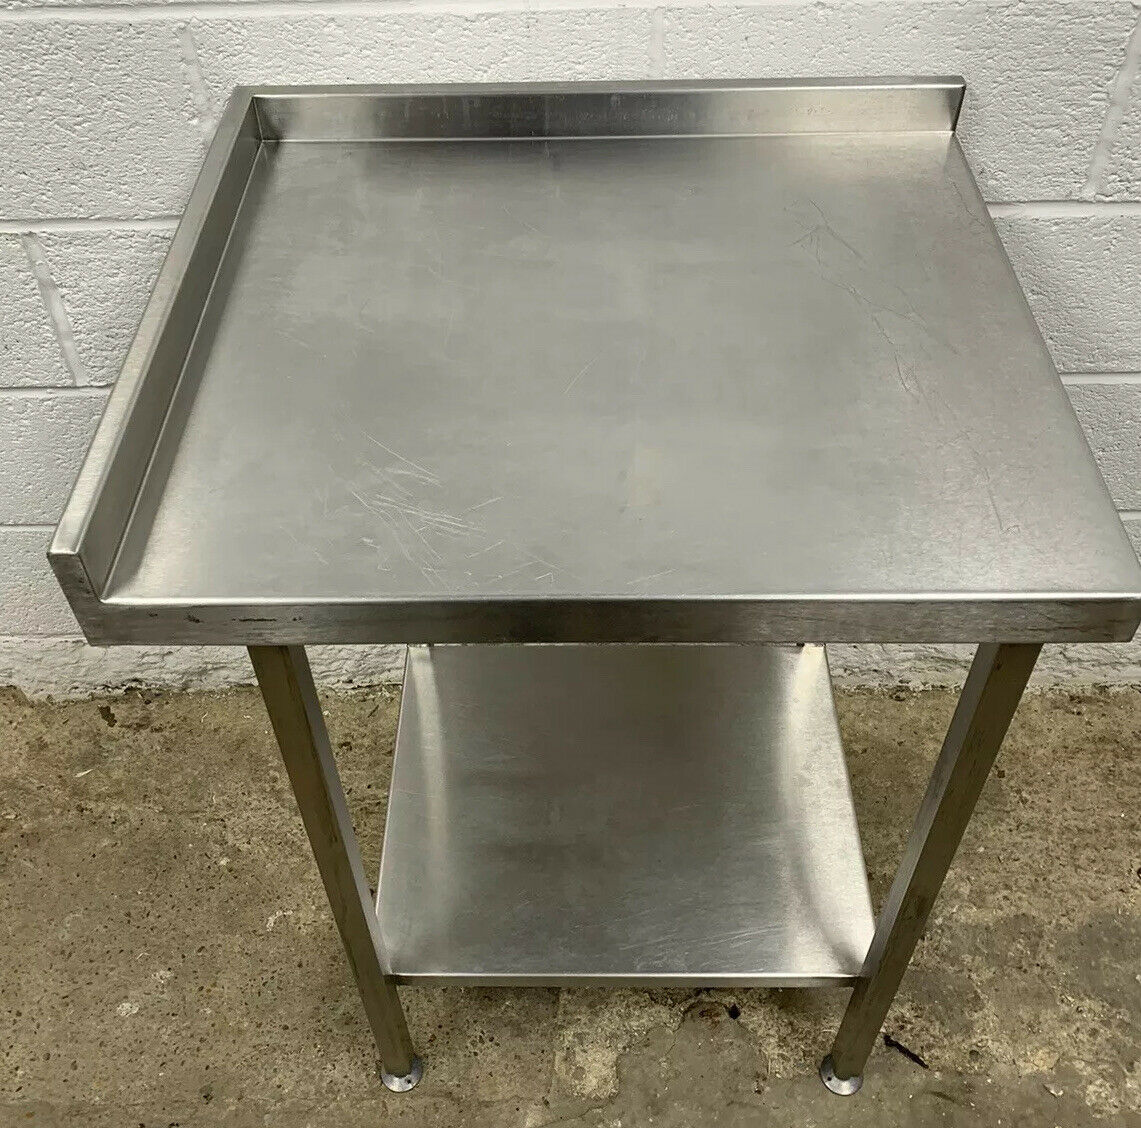 Stainless Steel Prep Table - Image 2 of 4